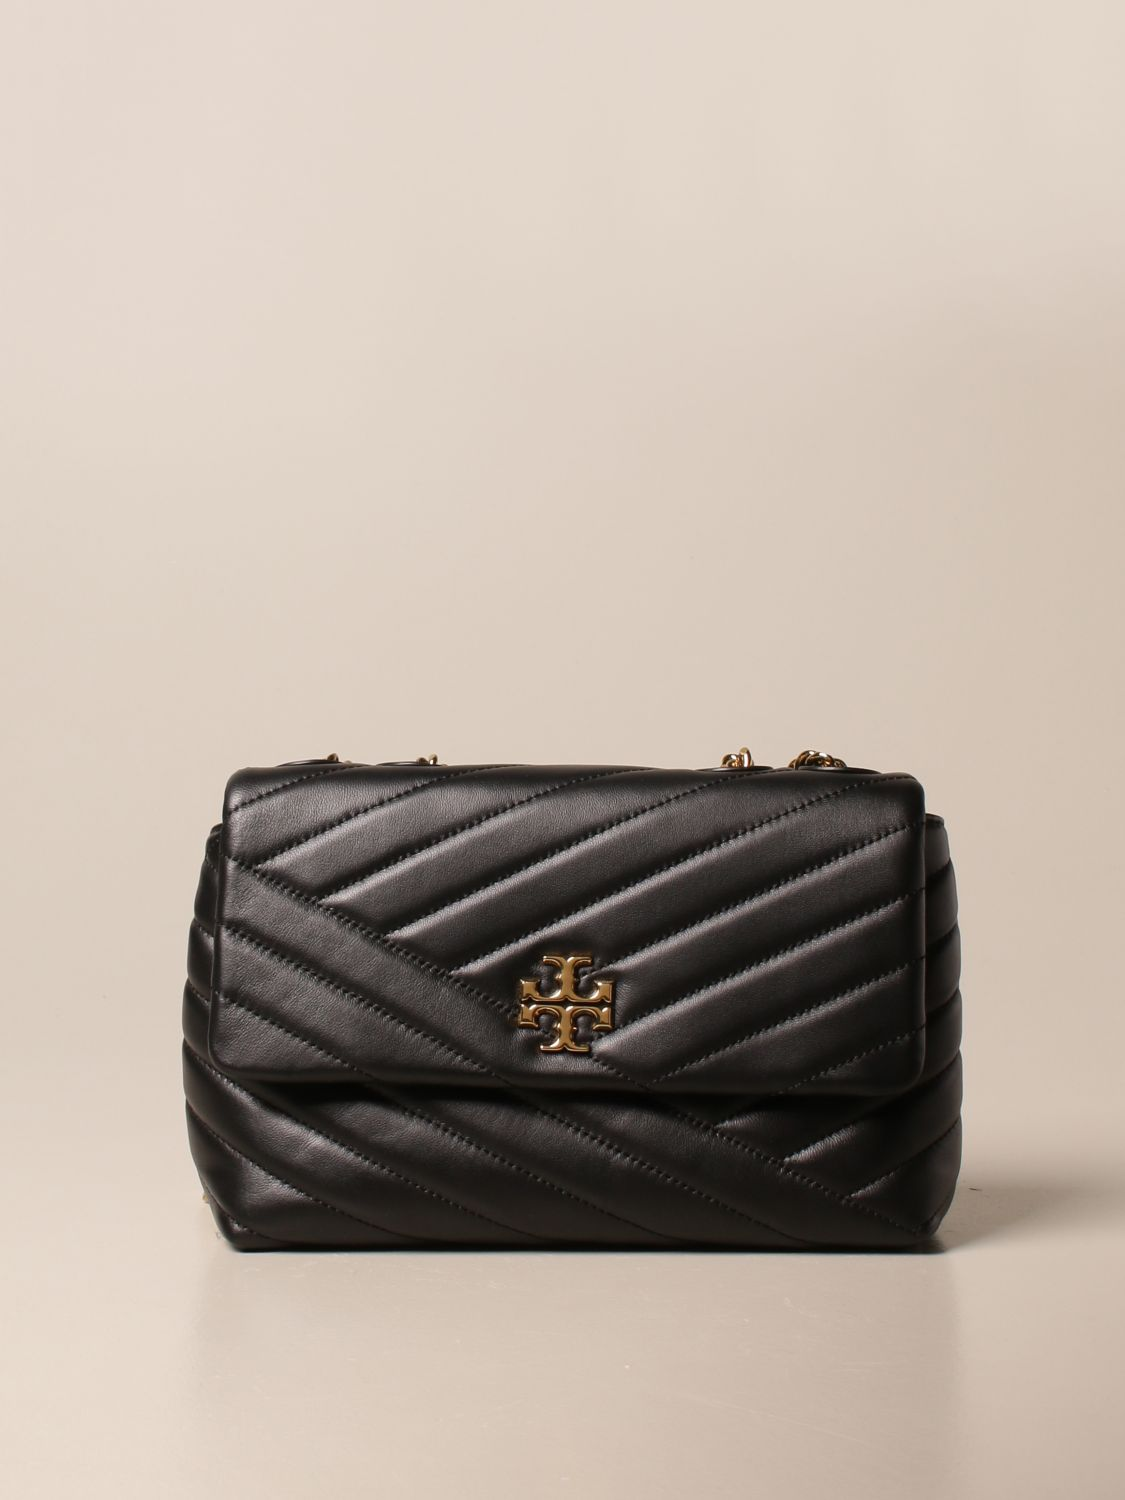 Crossbody bags Tory Burch: Kira Tory Burch bag in quilted leather black 1